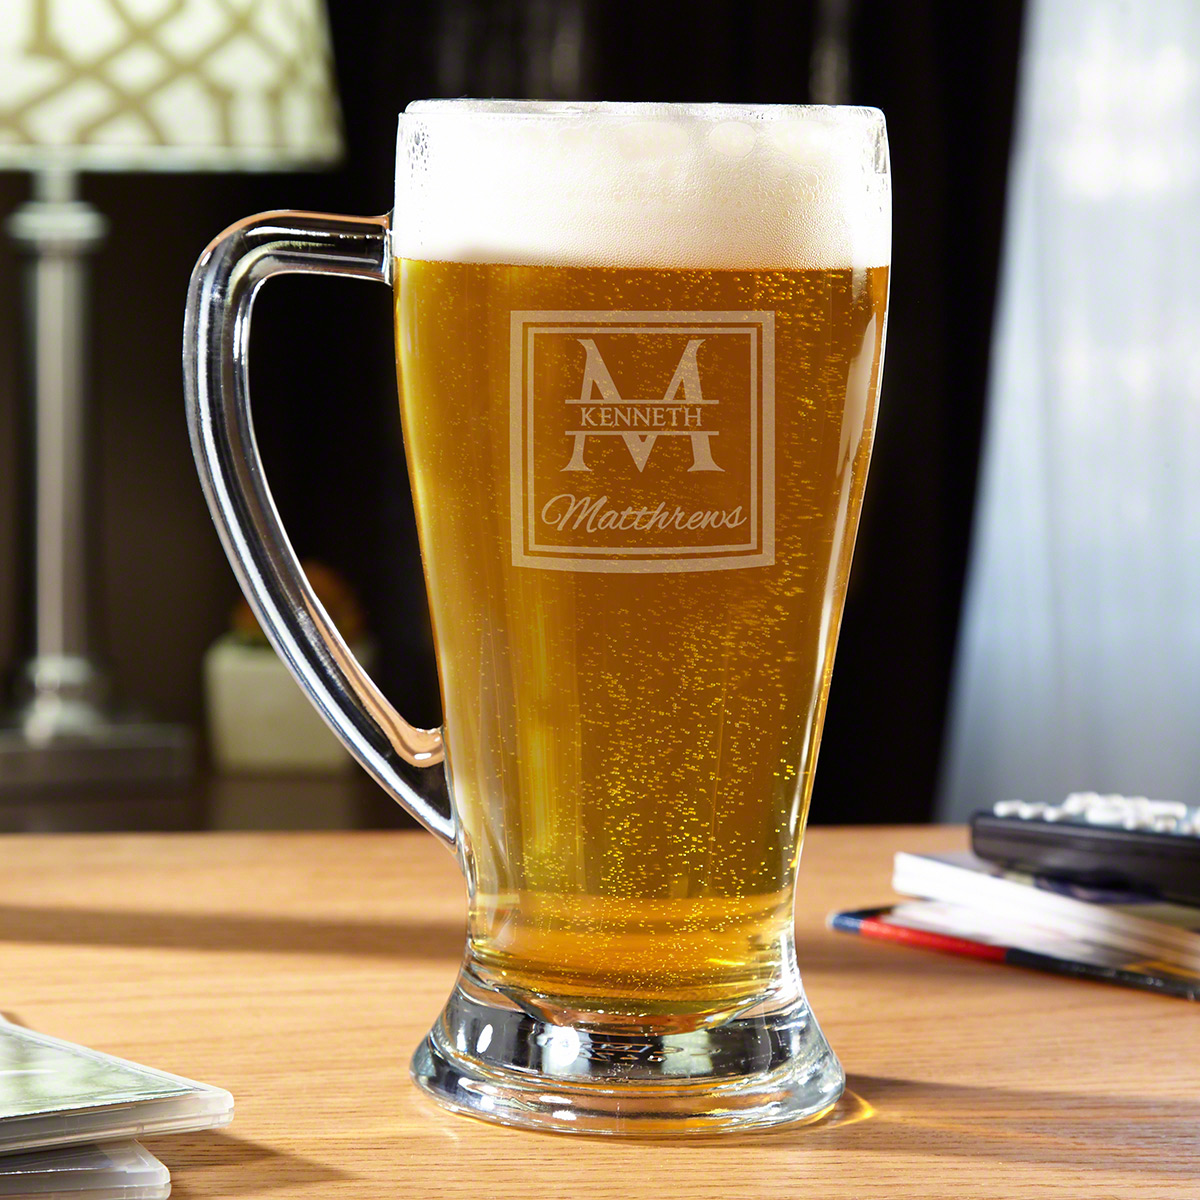 The best beer disappears quickly, but fine glassware is forever. The Oakhill monogrammed glass beer mug is the perfect choice for drinking your favorite ale or lager, then go back for more. Each personalized beer stein is made in Italy from premium glass #mug